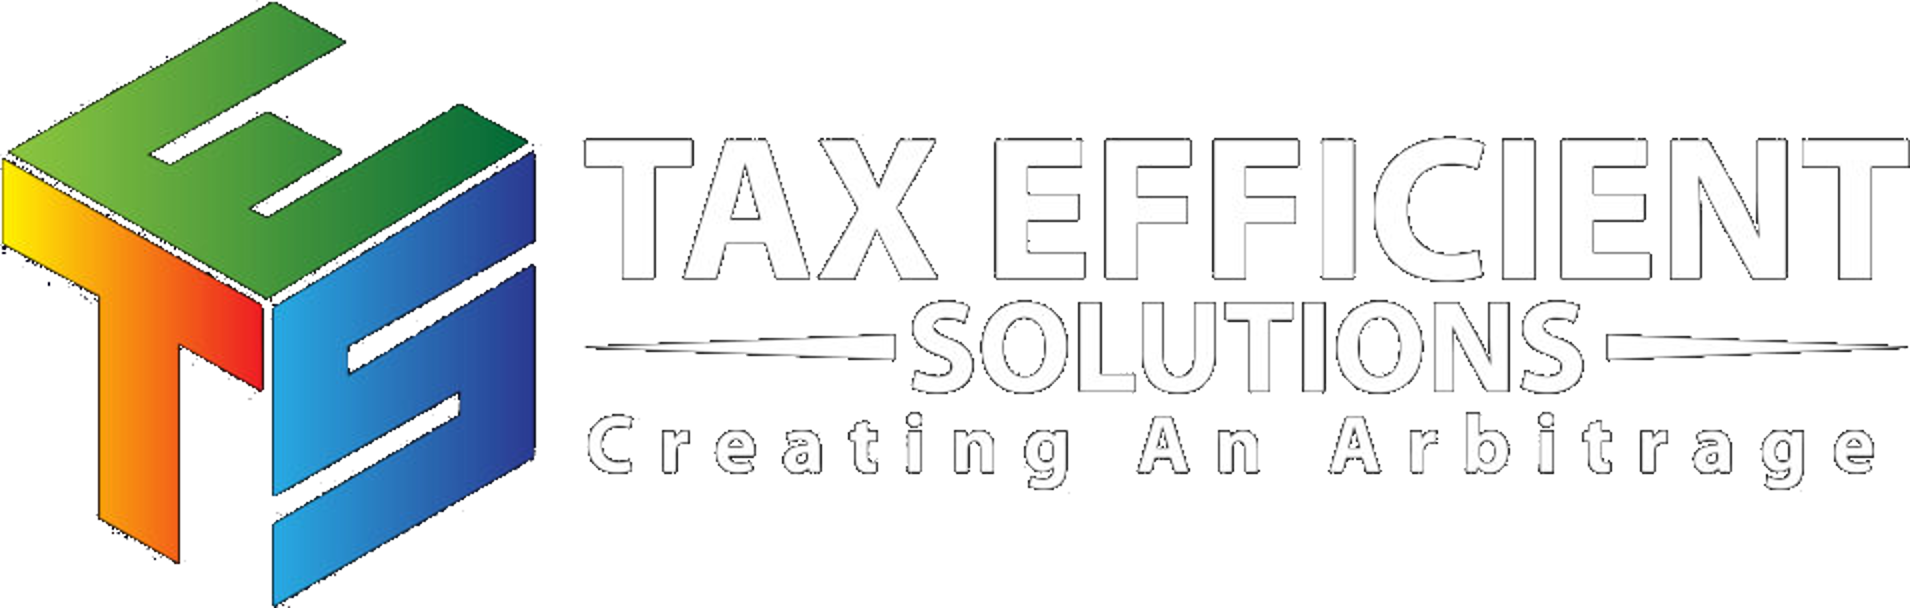 Tax Efficient Solutions